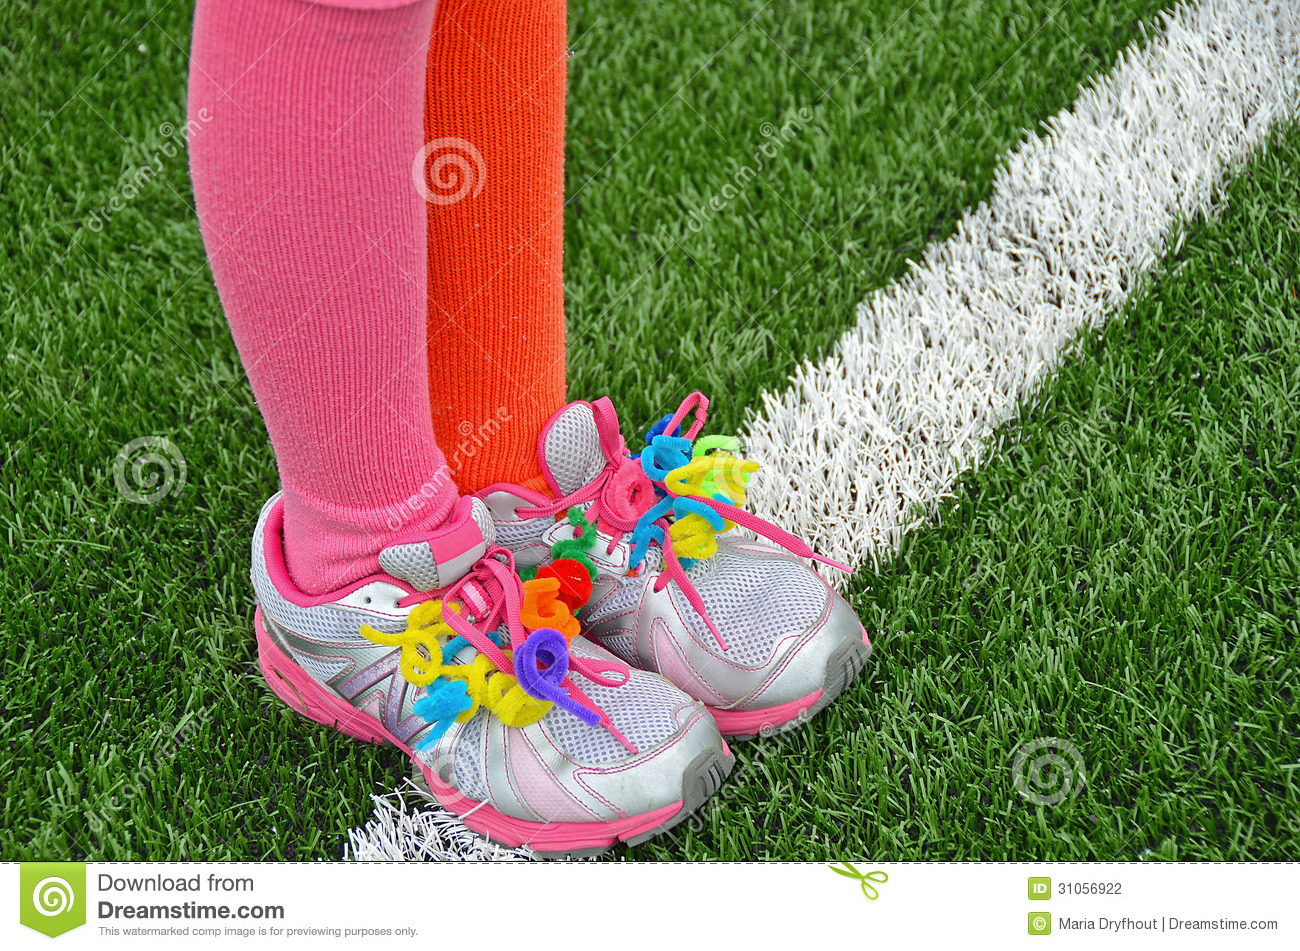 Colorful Pipe Cleaners On Sport Shoes Stock Photo - Image of line ... 7452adc62b8e